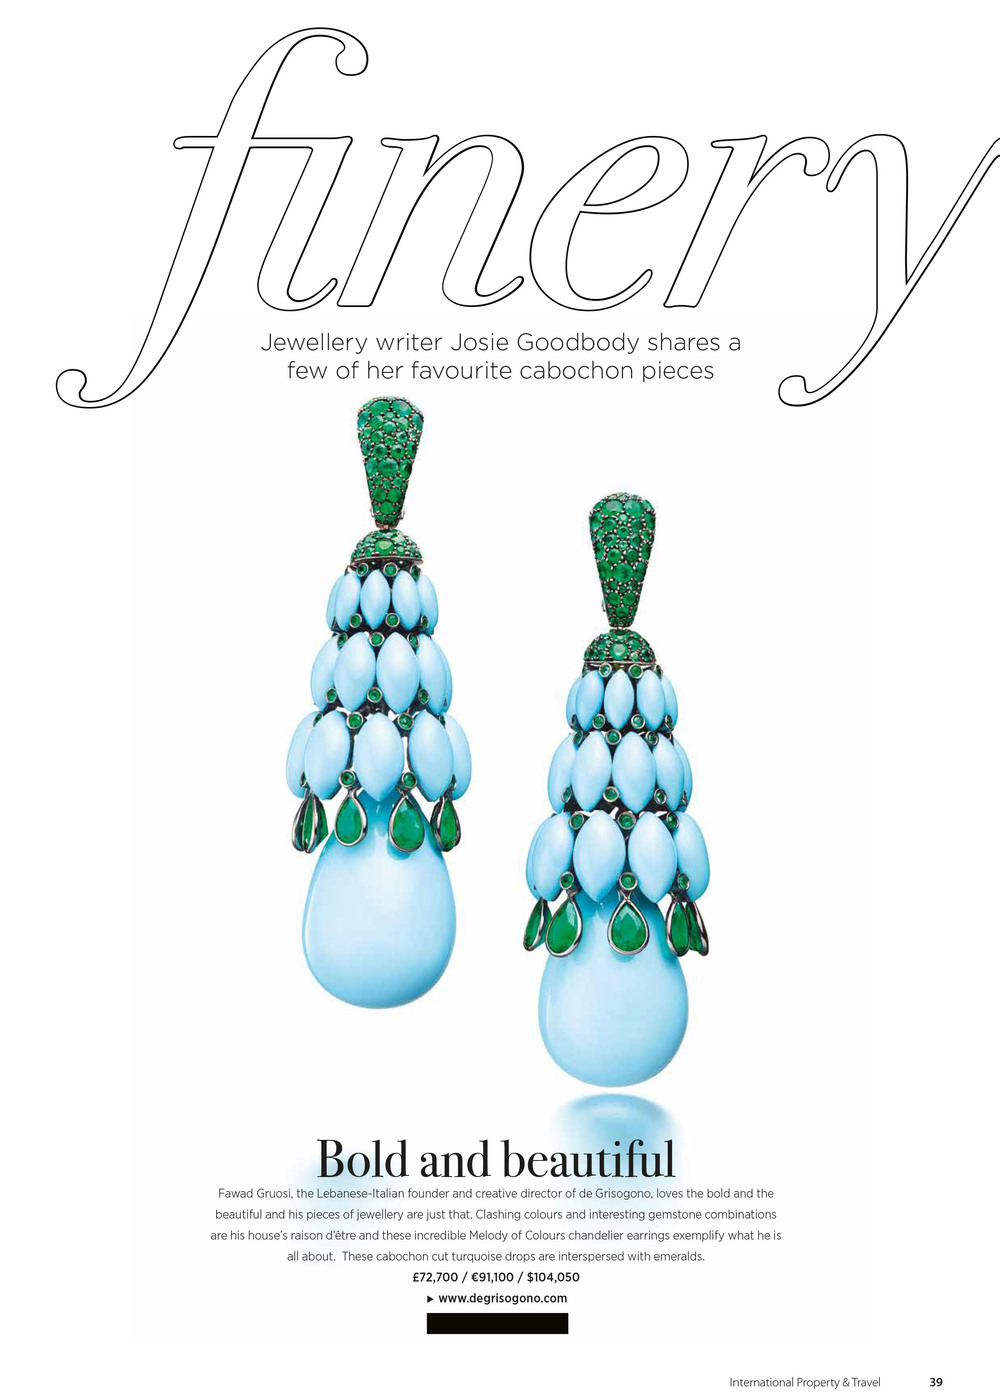 Josie-Goodbody-Jewellery-Articles